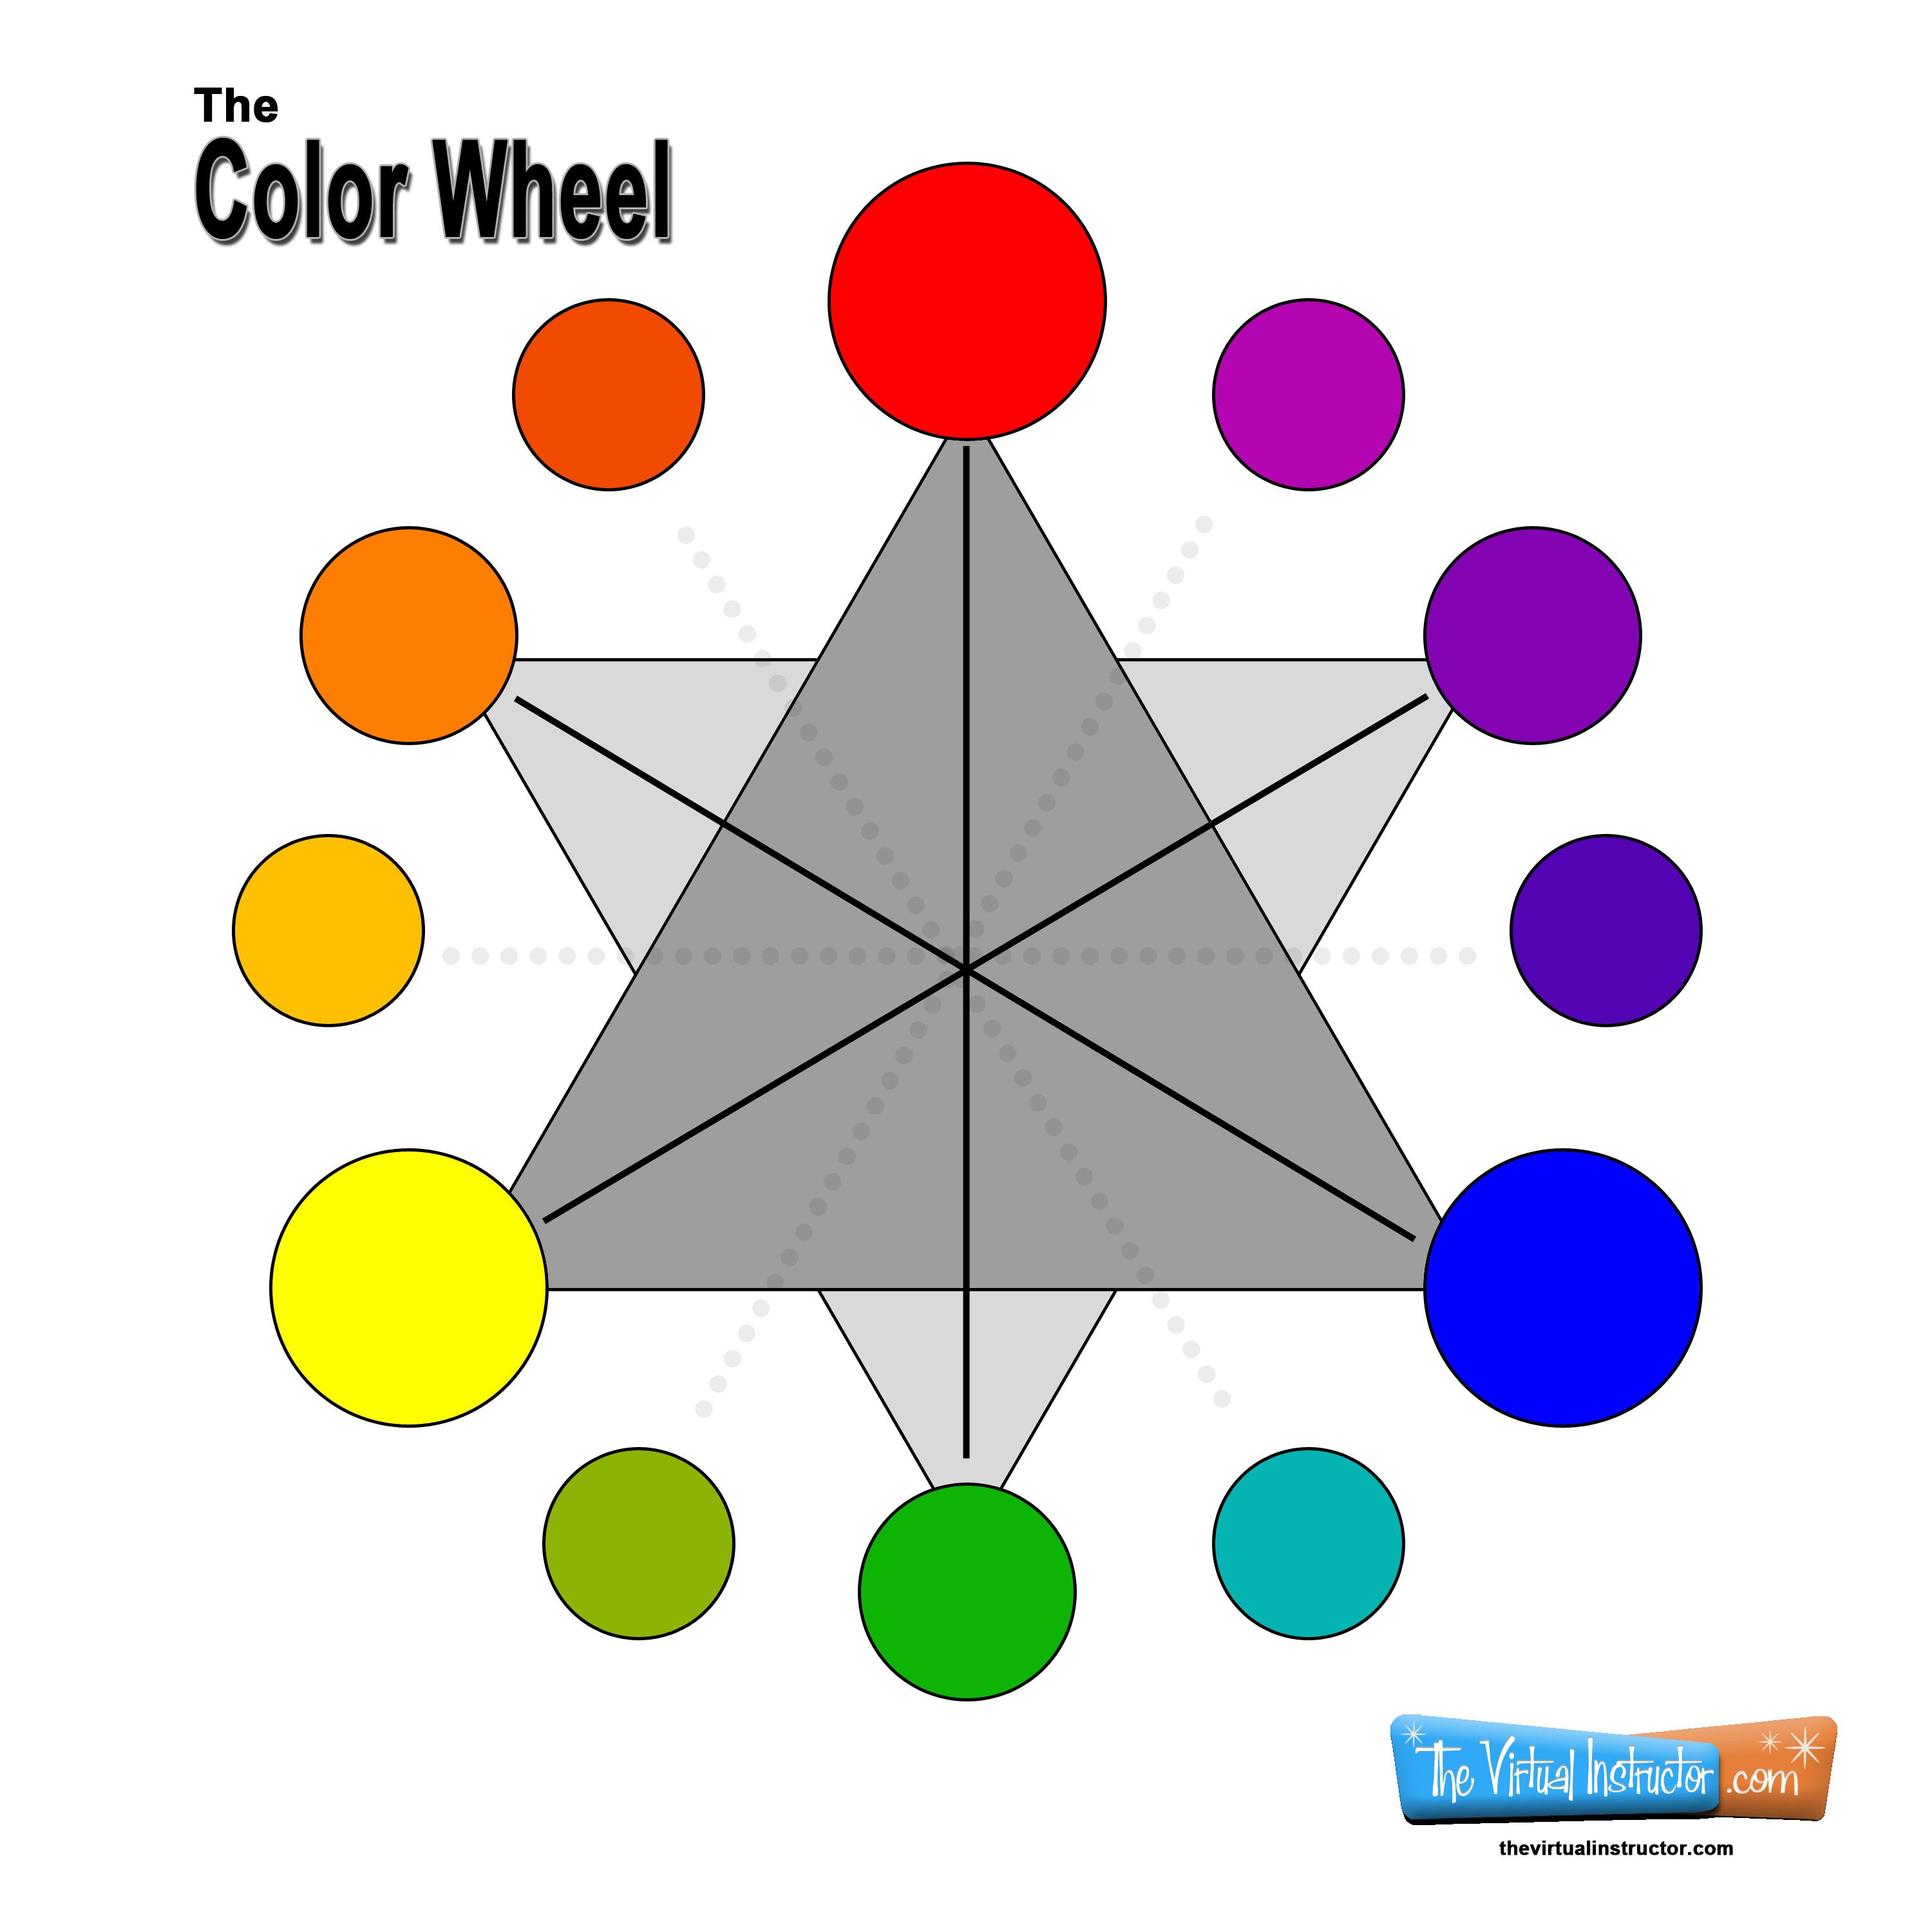 Color Wheel Complementary Colors Color Wheel Chart For Complementary Colors Color Wheel Complementary Color Wheel Rainbow Painting